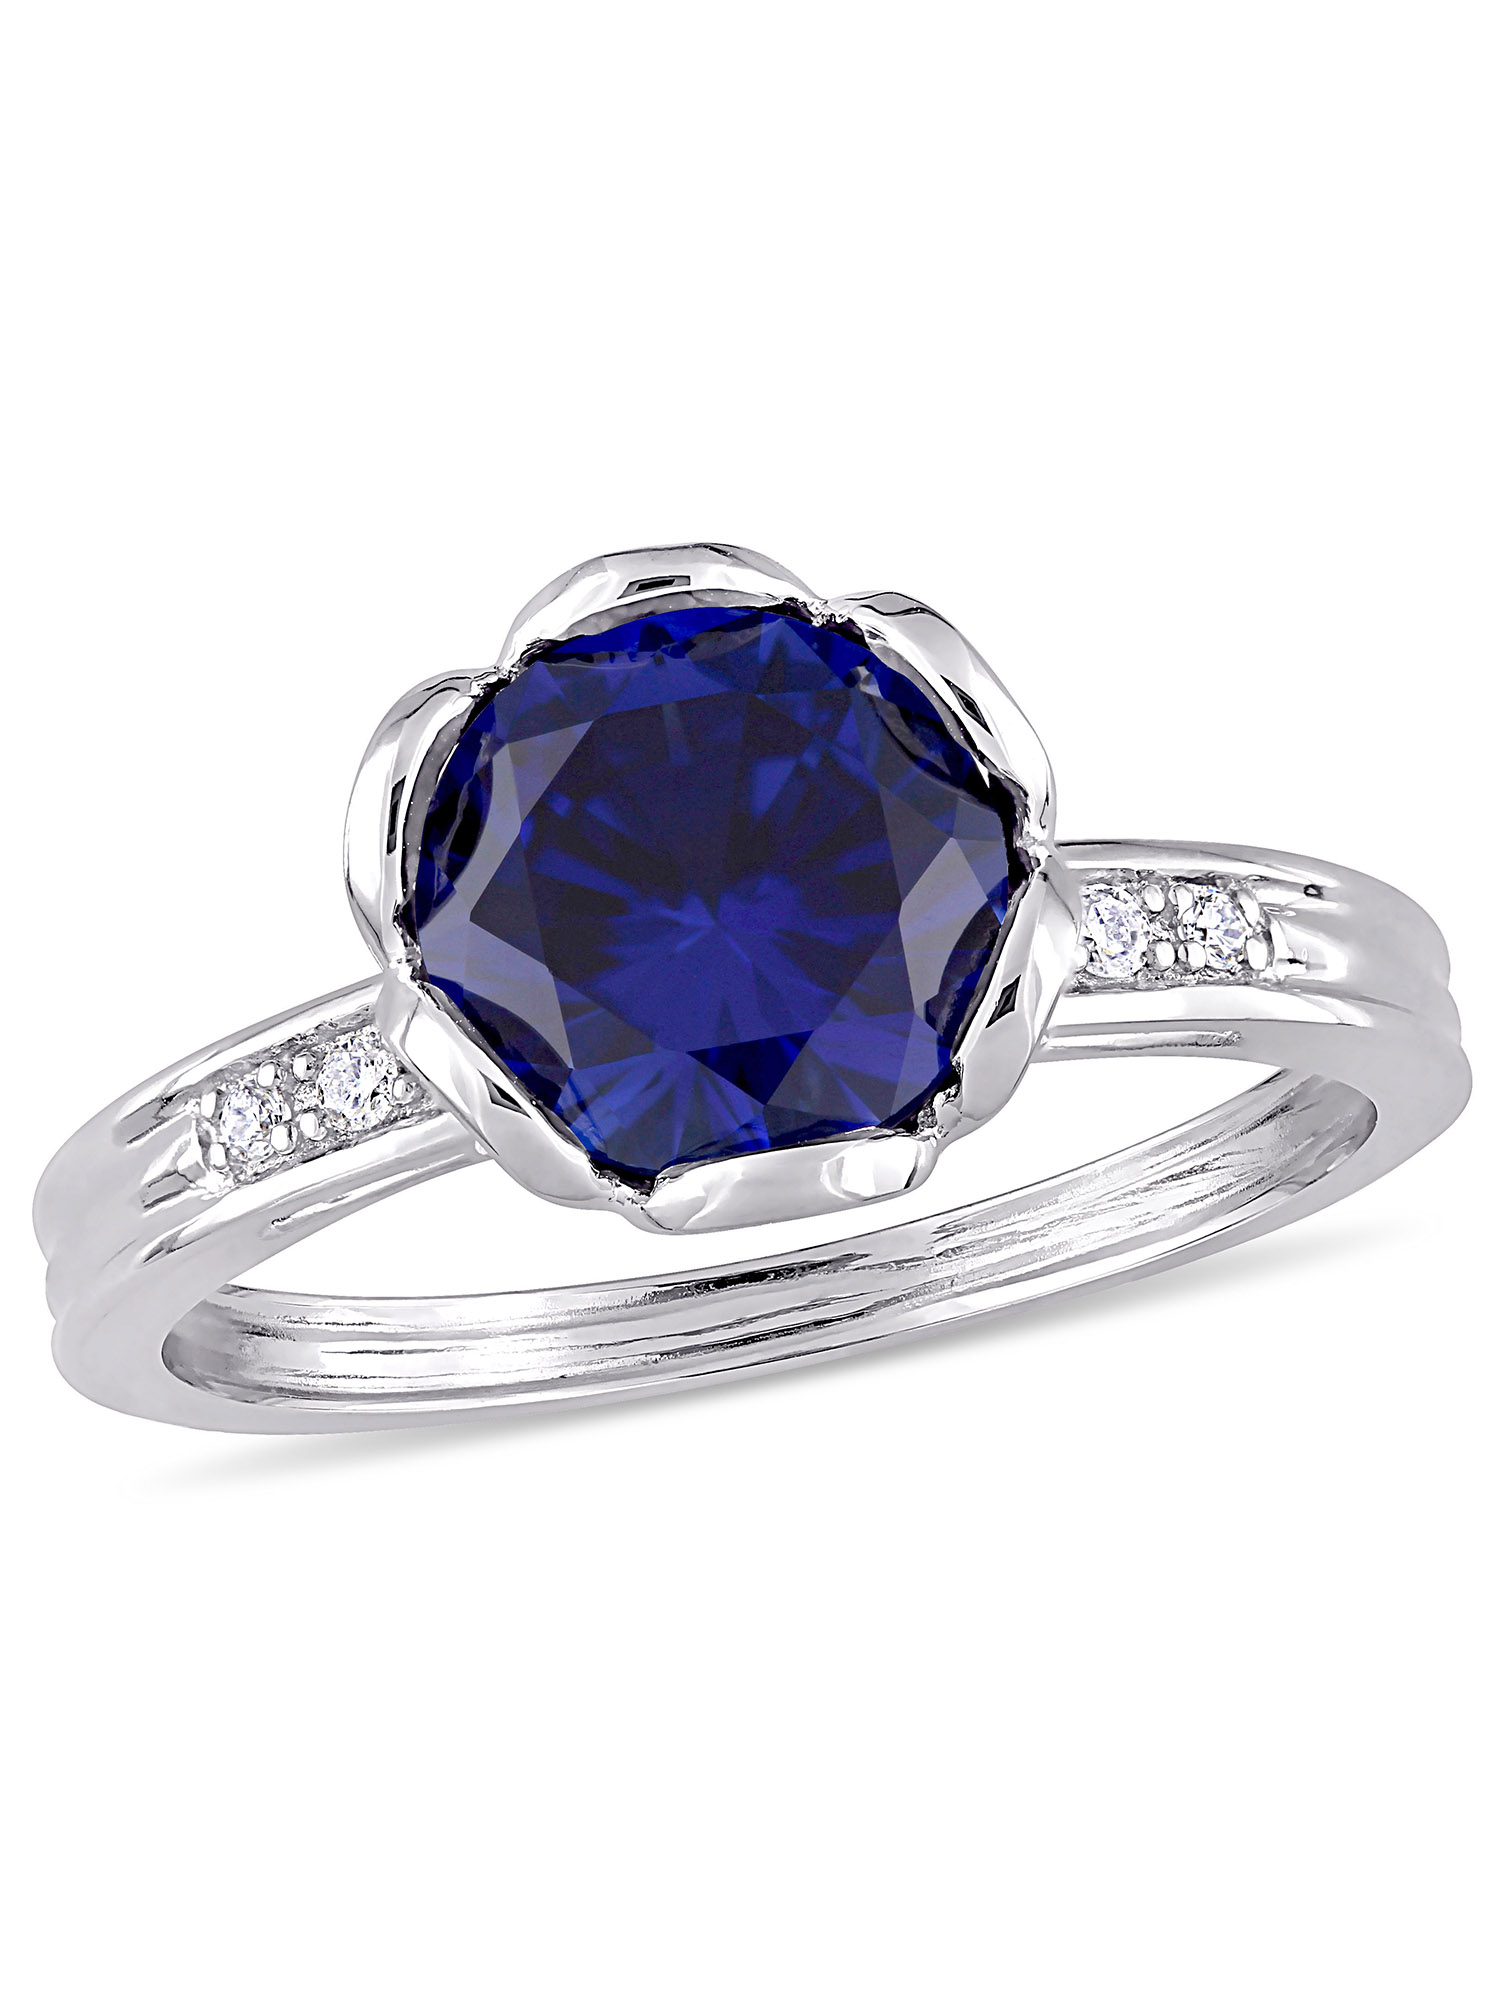 Tangelo 2-3/8 Carat T.G.W. Created Blue Sapphire and 1/8 Carat T.W. Diamond 10kt White Gold Floral Engagement Ring